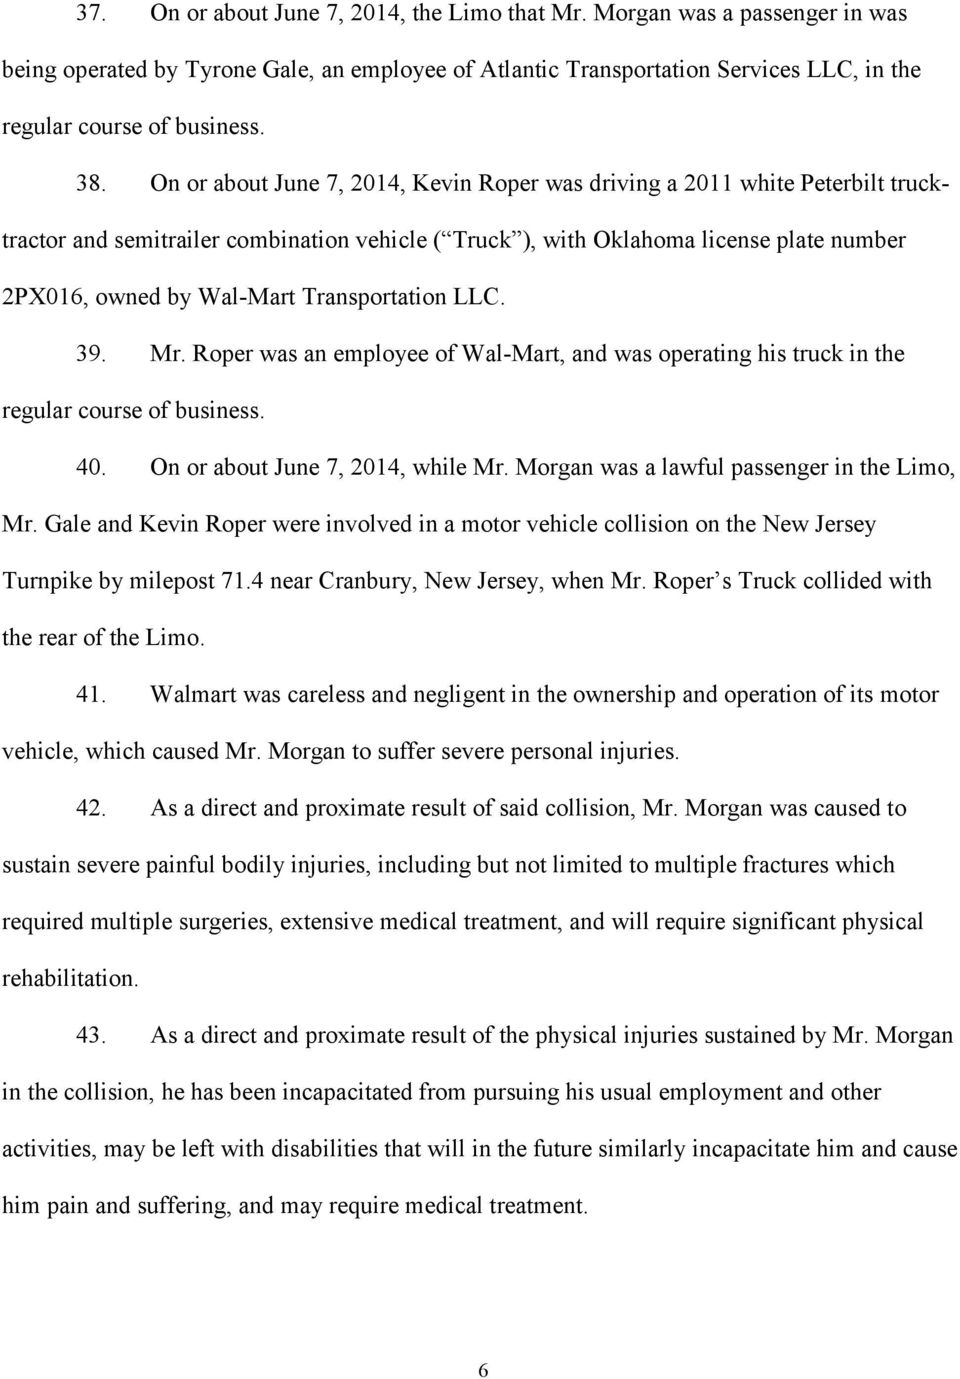 Roper was an employee of Wal-Mart, and was operating his truck in the regular course of business. 40. On or about June 7, 2014, while Mr. Morgan was a lawful passenger in the Limo, Mr.